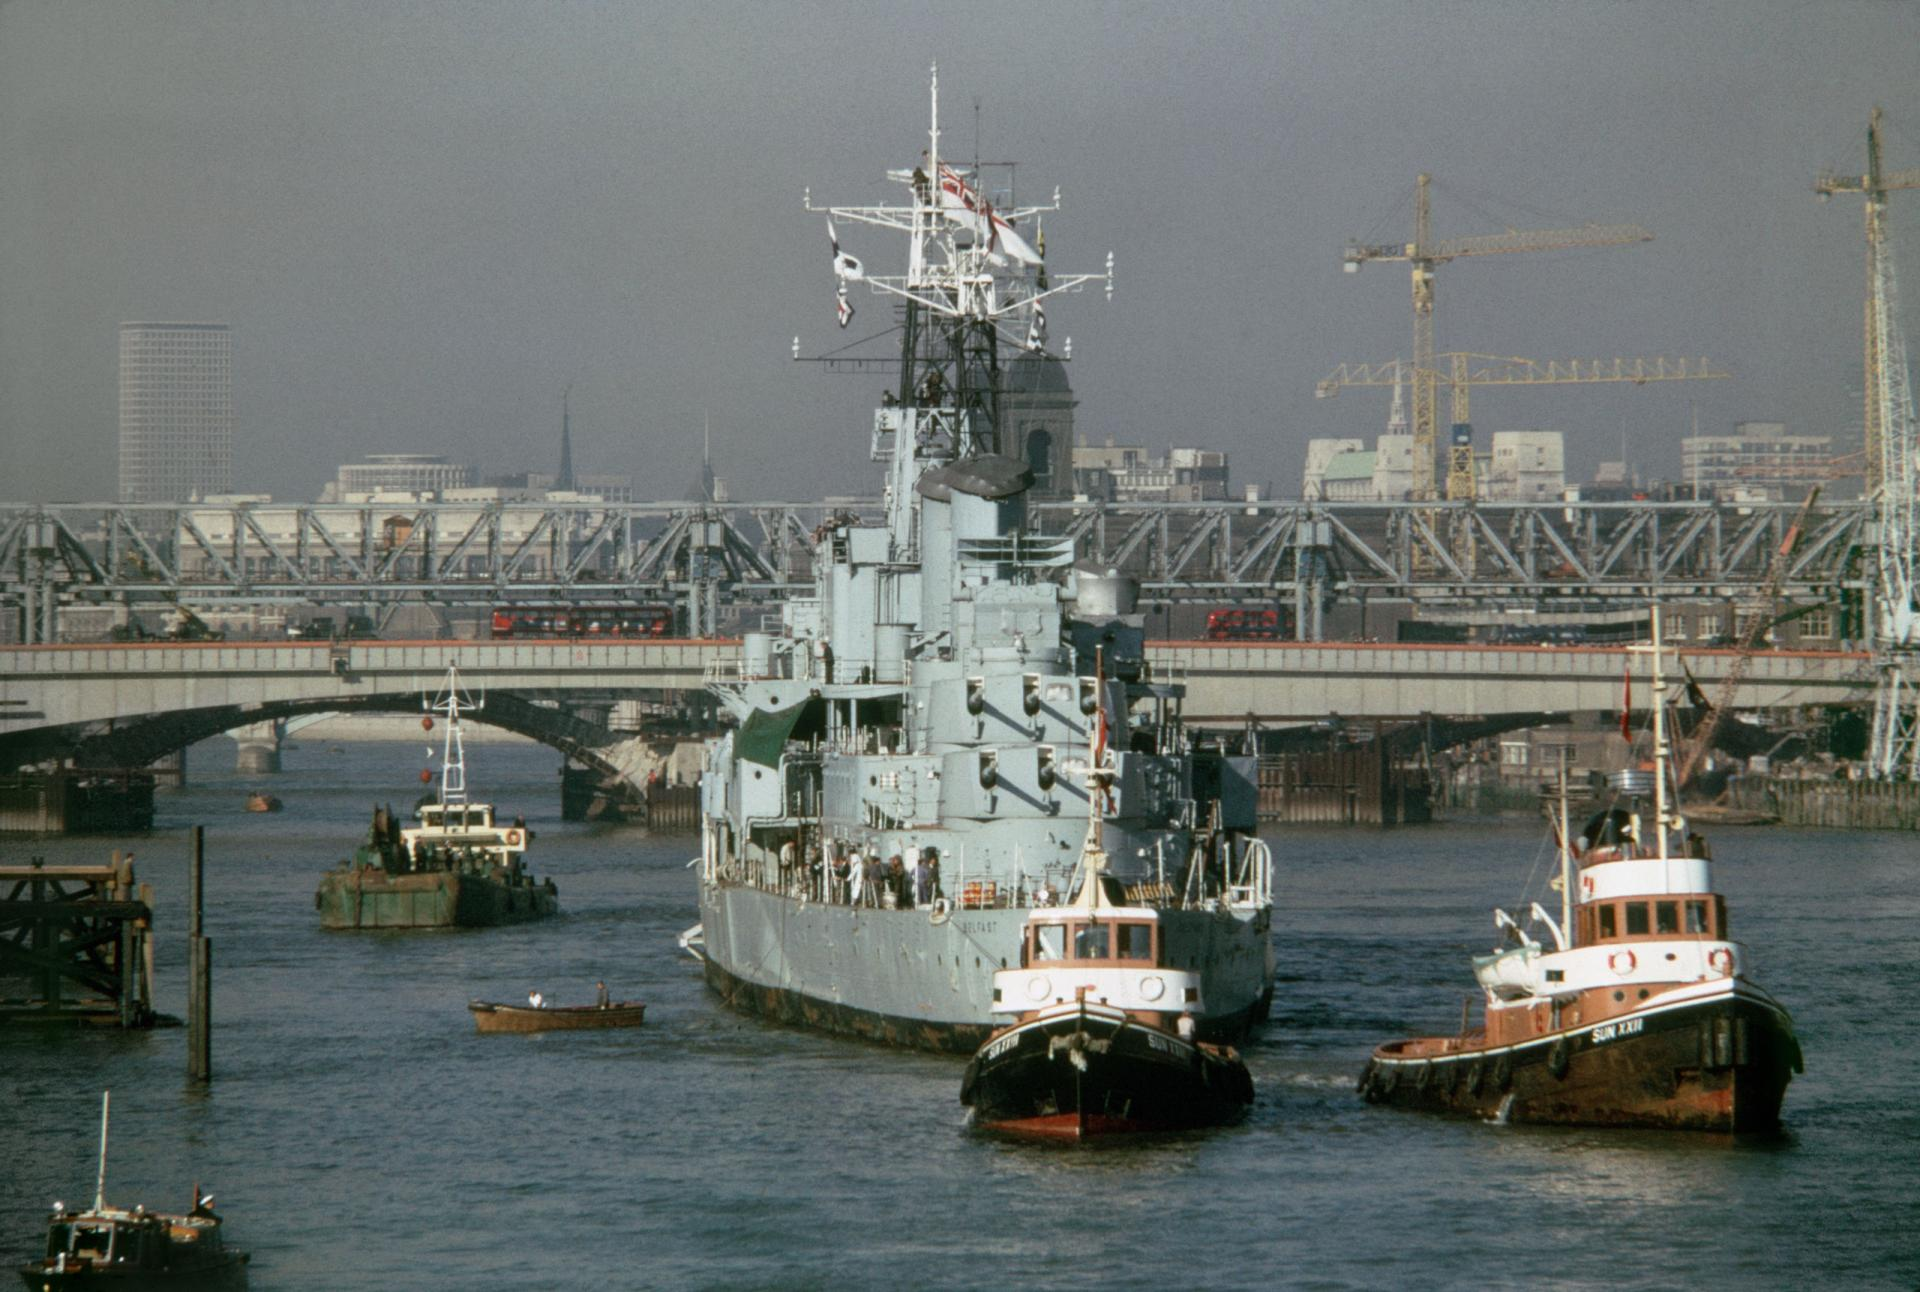 HMS Belfast arrives at the pool of London